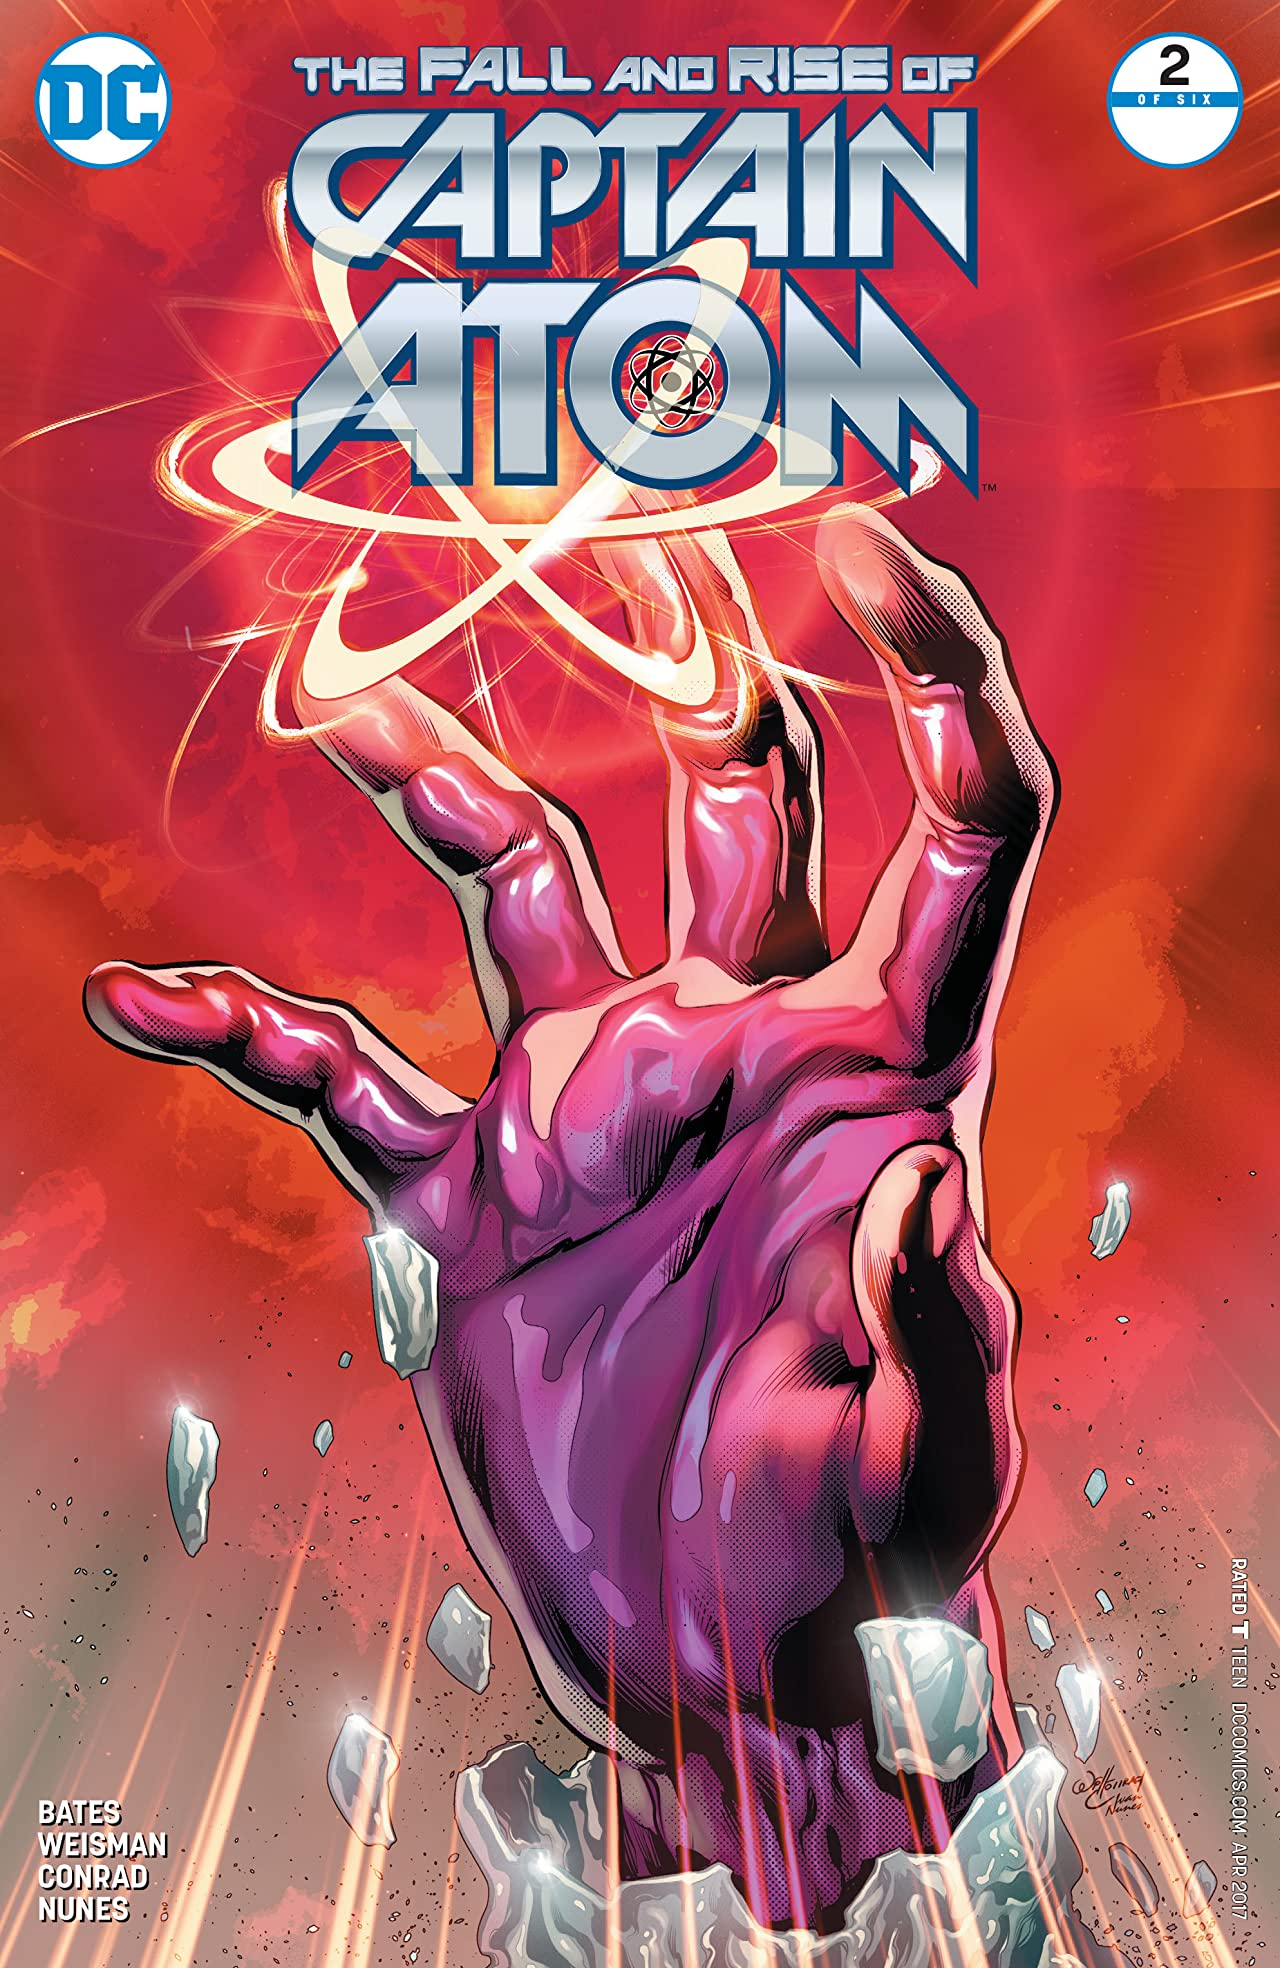 The Fall and Rise of Captain Atom (2017) #2